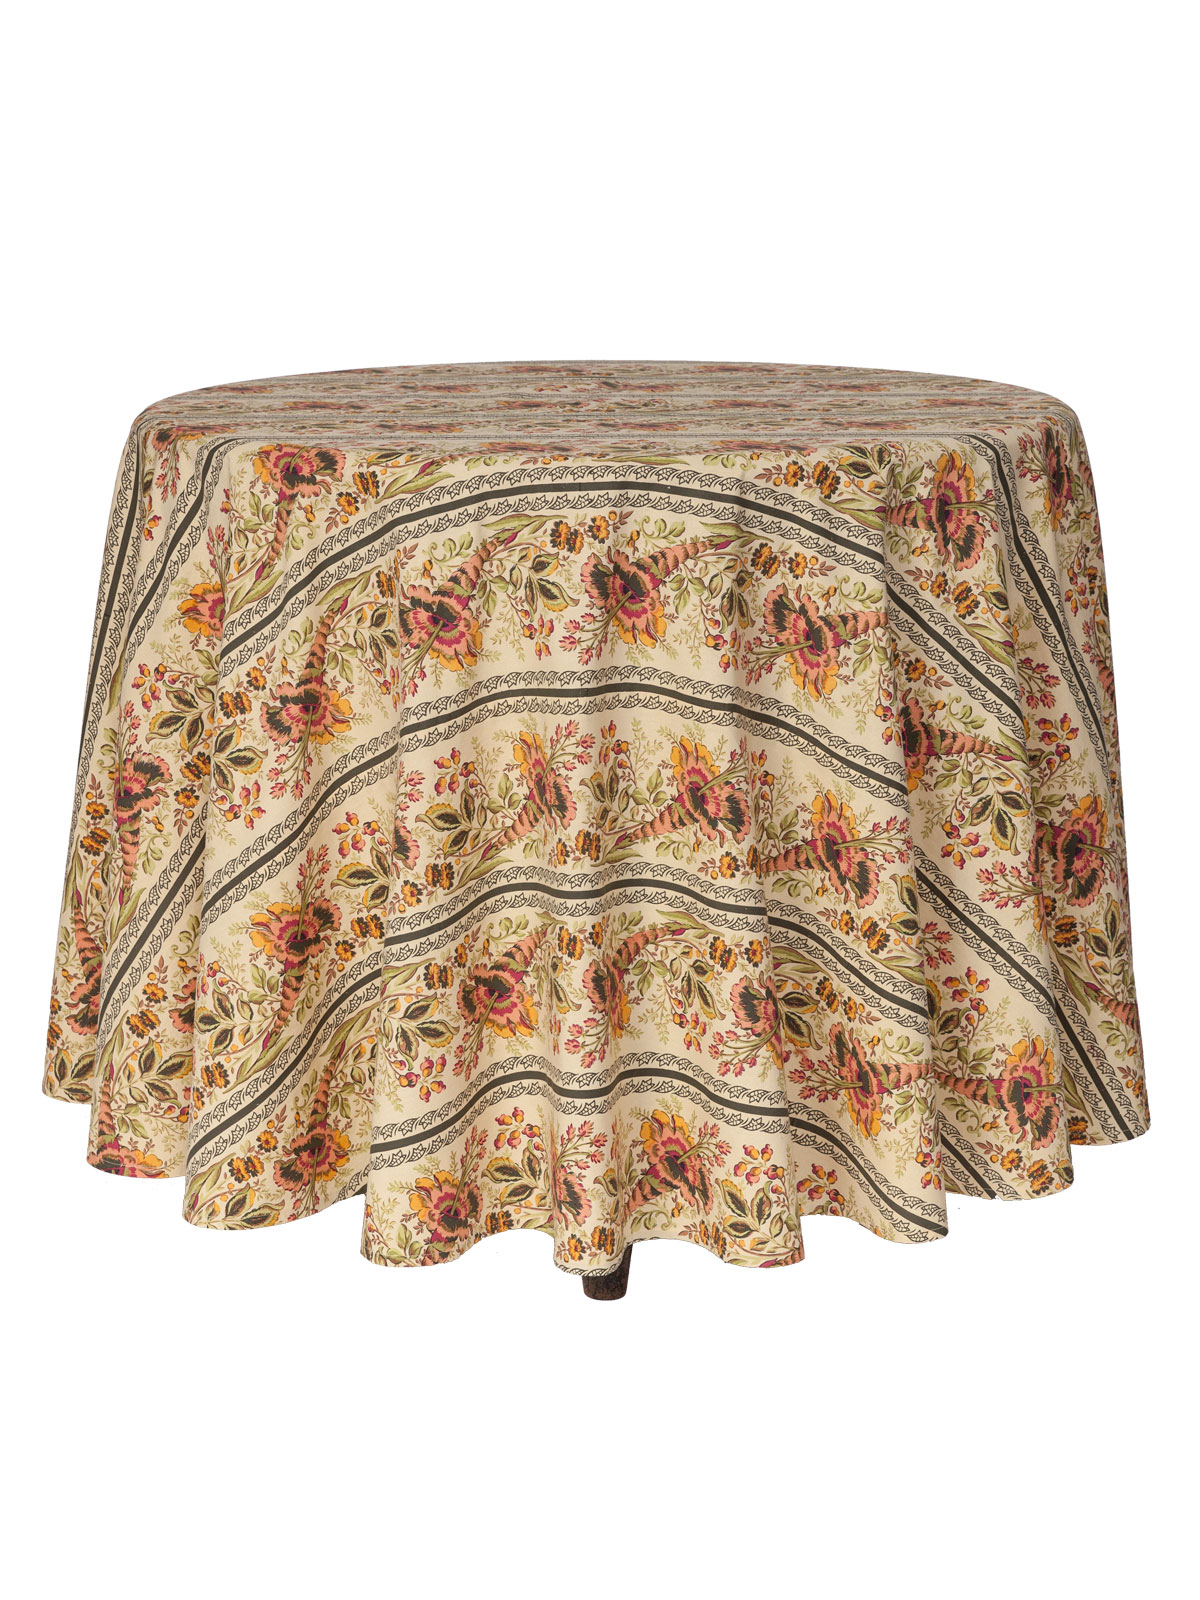 Cornucopia Round Cloth Attic Sale Linens Amp Kitchen